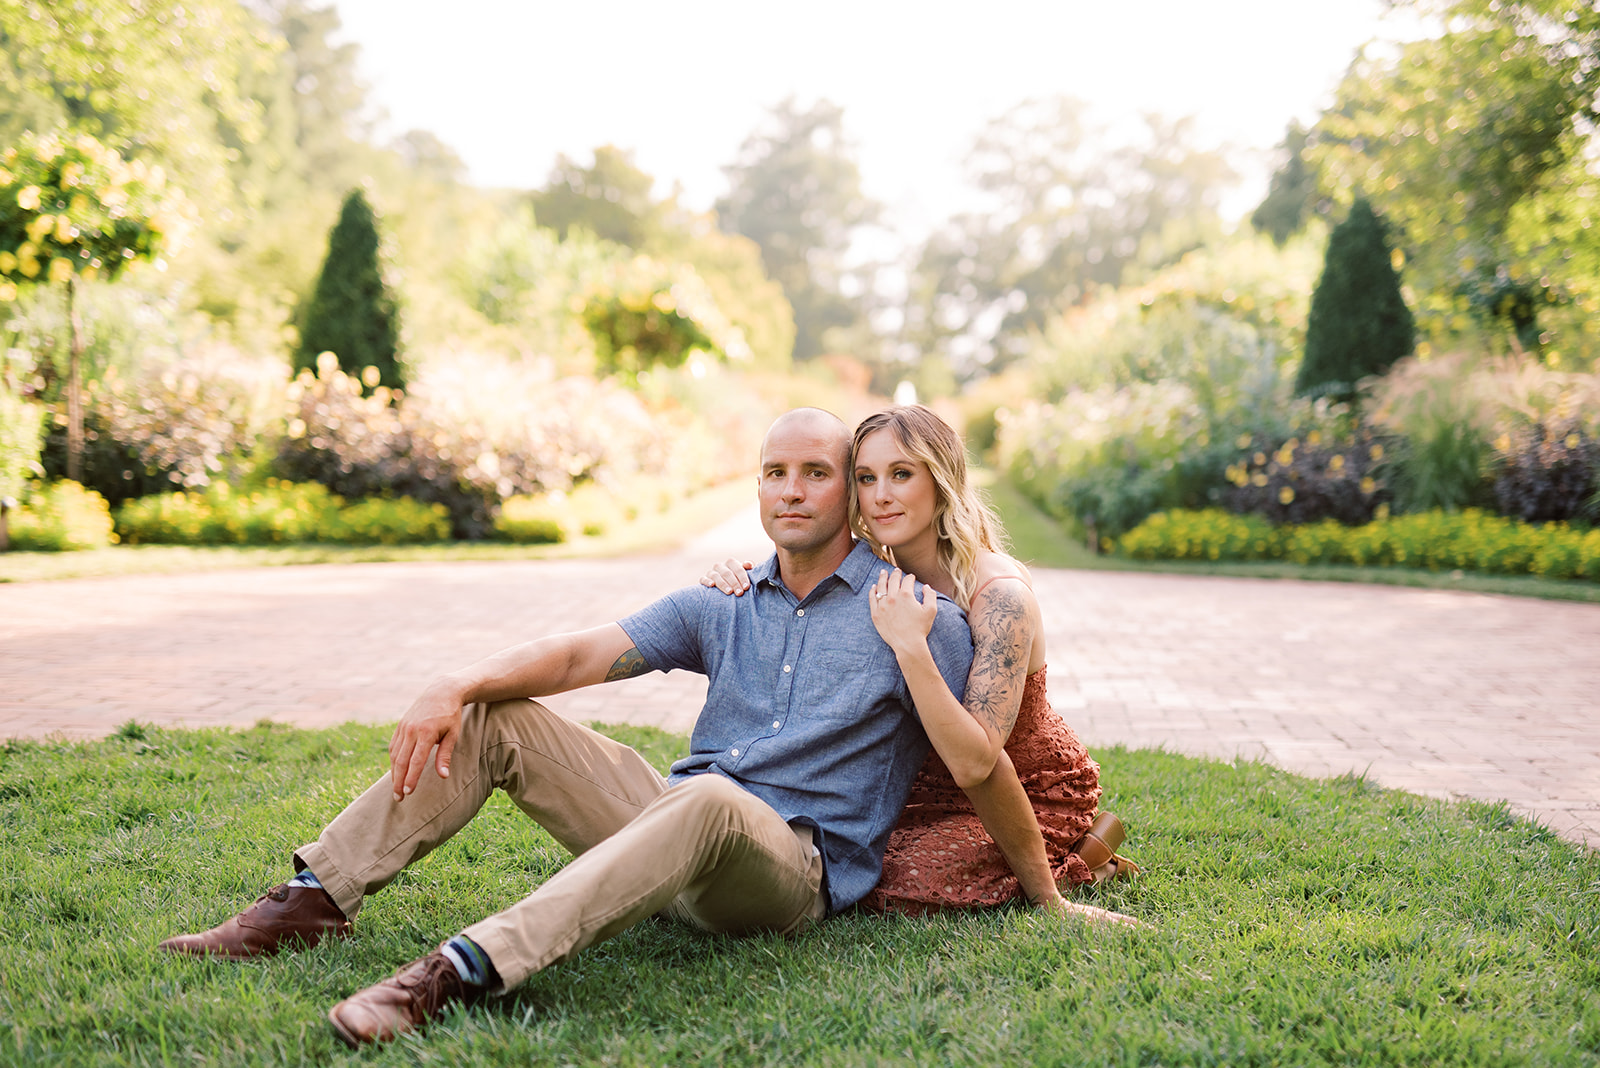 Engagement photos within the formal gardens at Longwood Gardens.